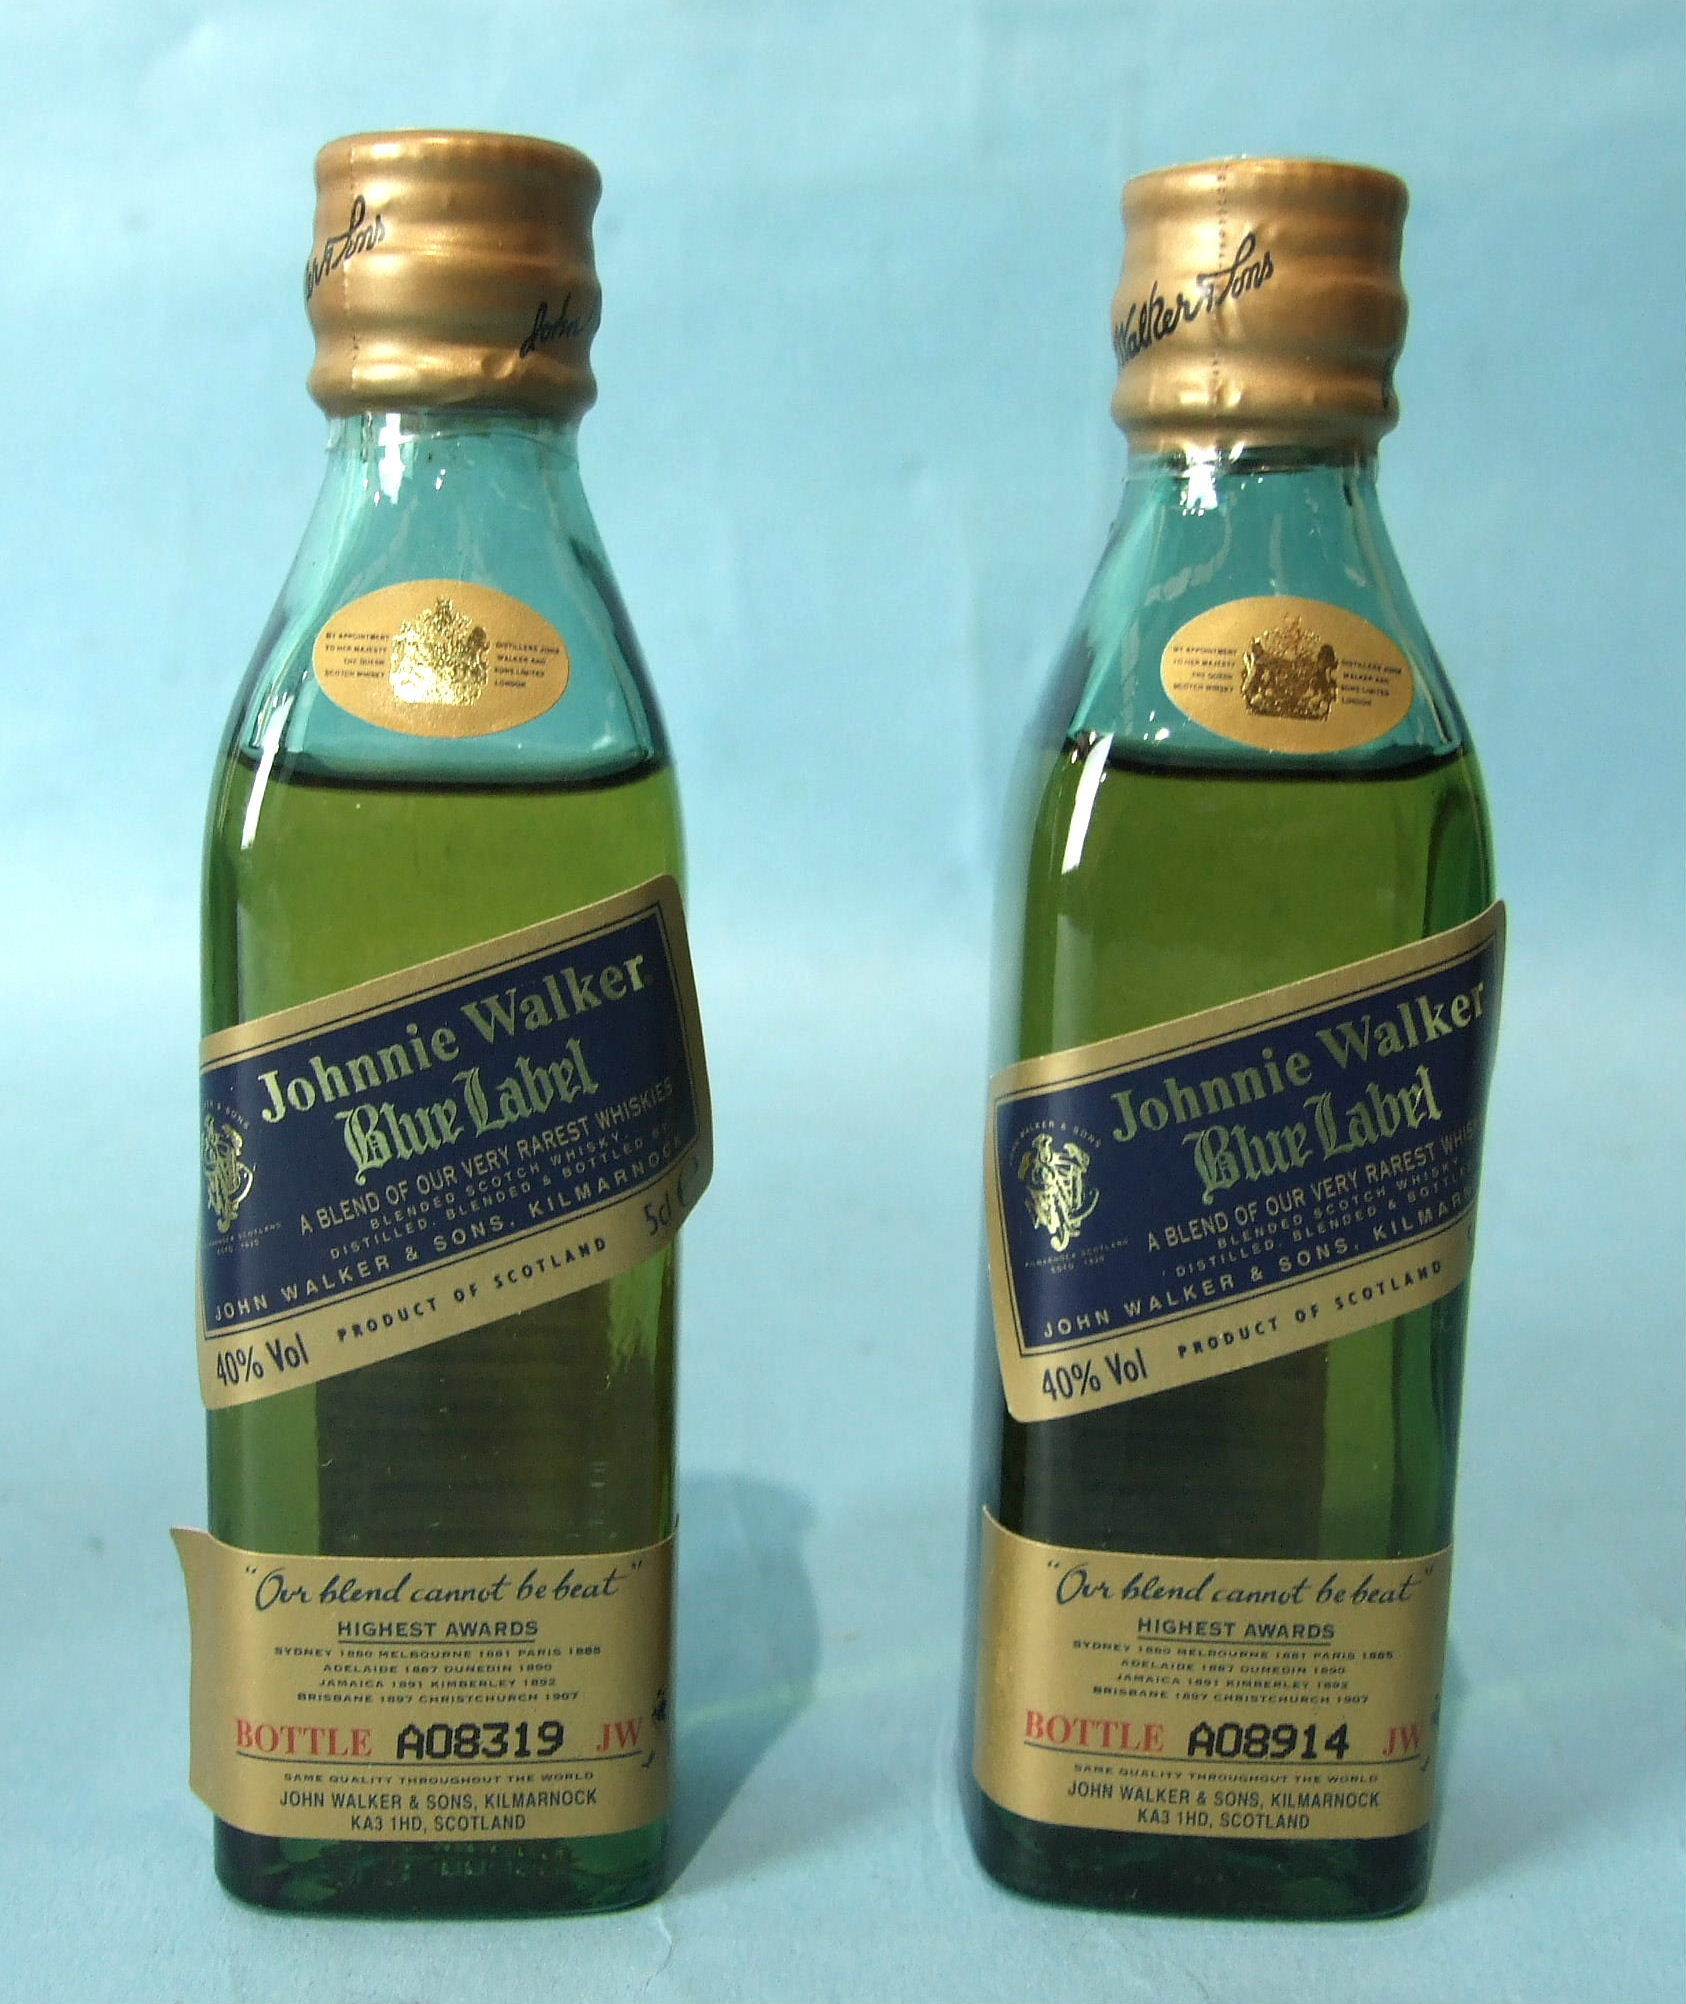 Lot 51 - Johnnie Walker, two Blue Label Scotch Whisky miniatures, no.s A08914 and A08319, 40% vol, 5cl, in